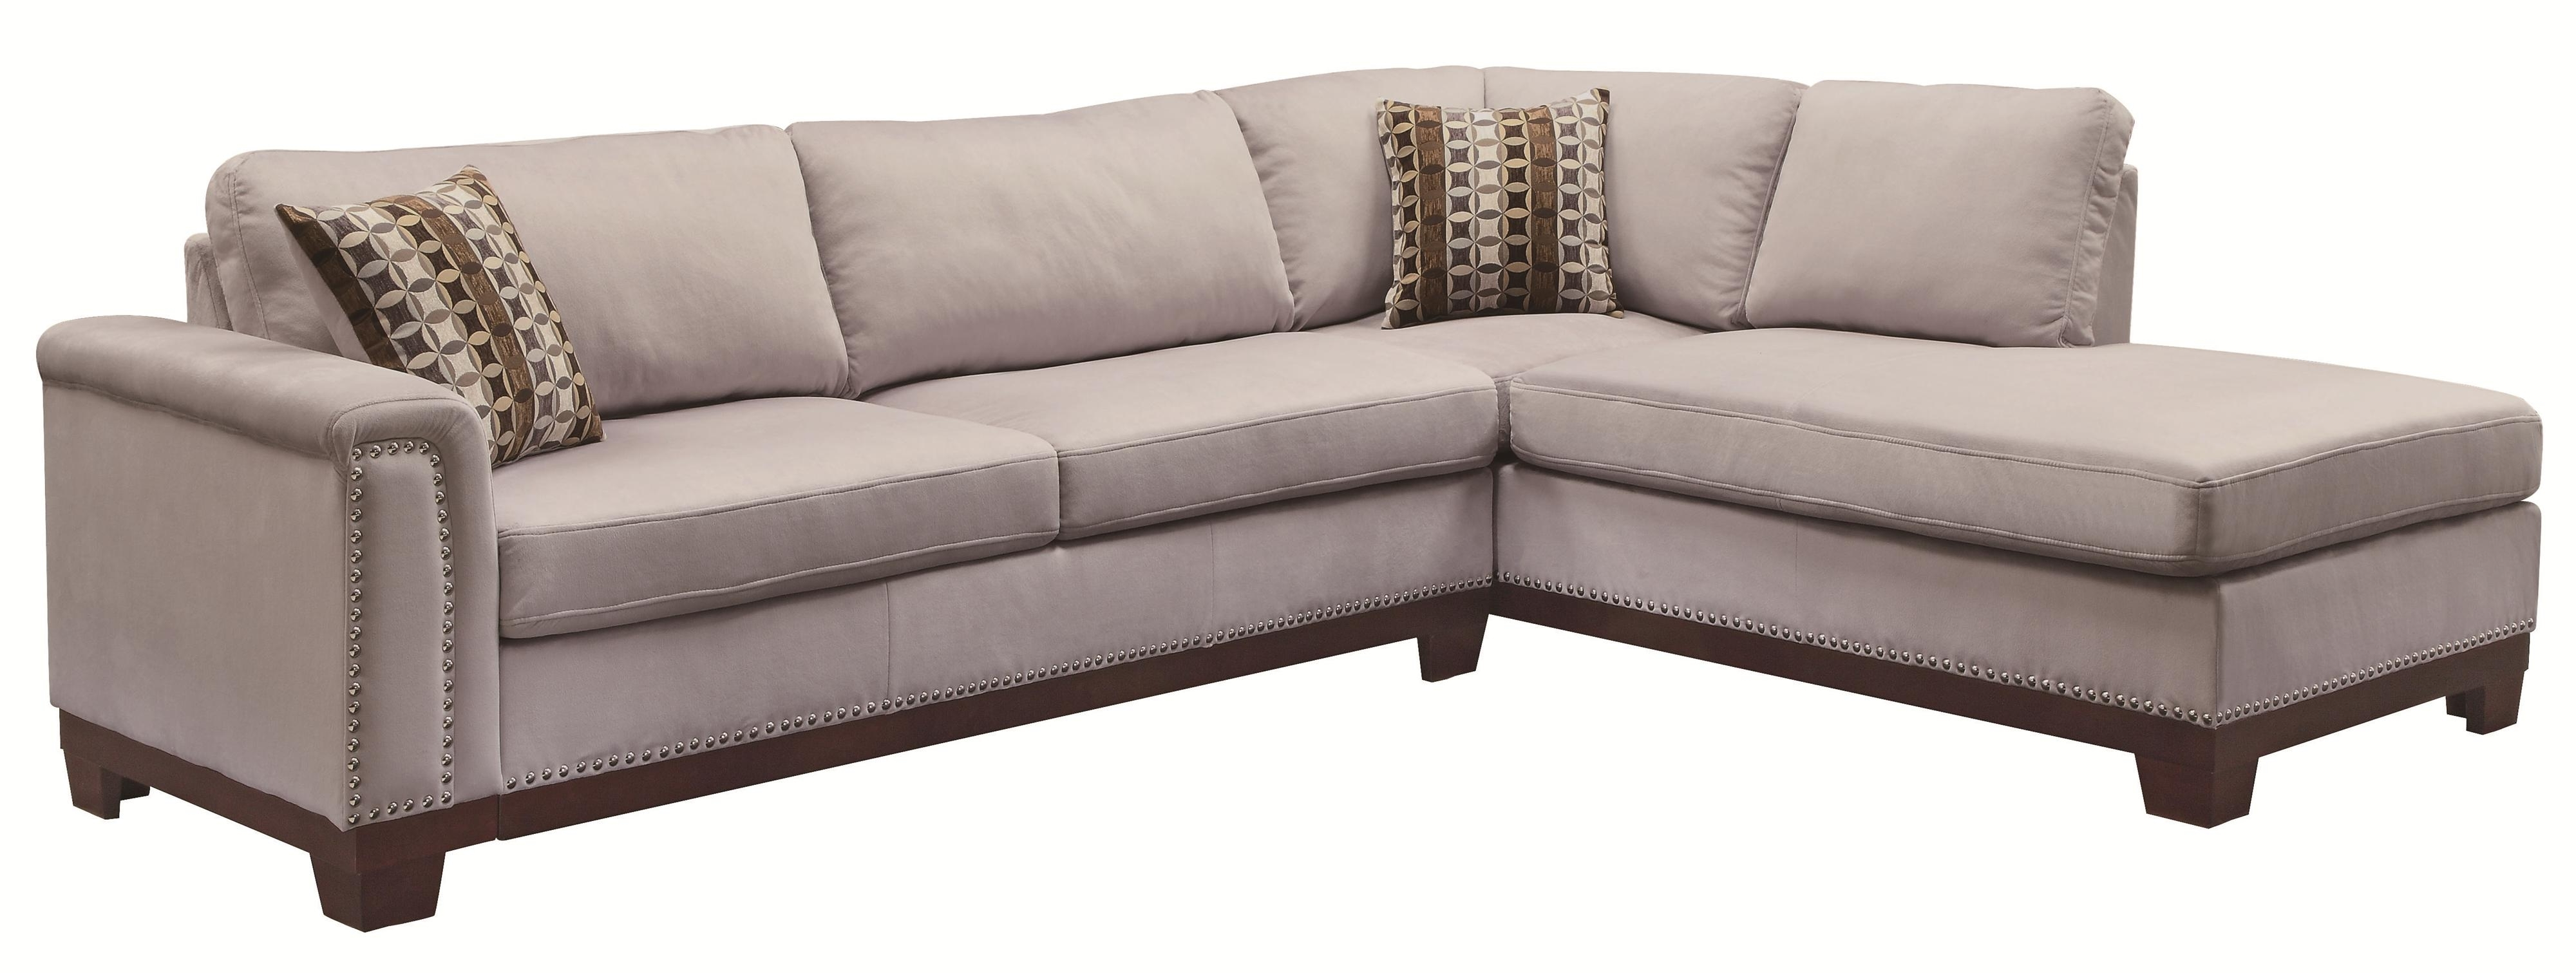 Trendy Small Couches With Chaise Lounge In Stylish Couch With Chaise Lounge With Stylish Small Living Room (View 8 of 15)